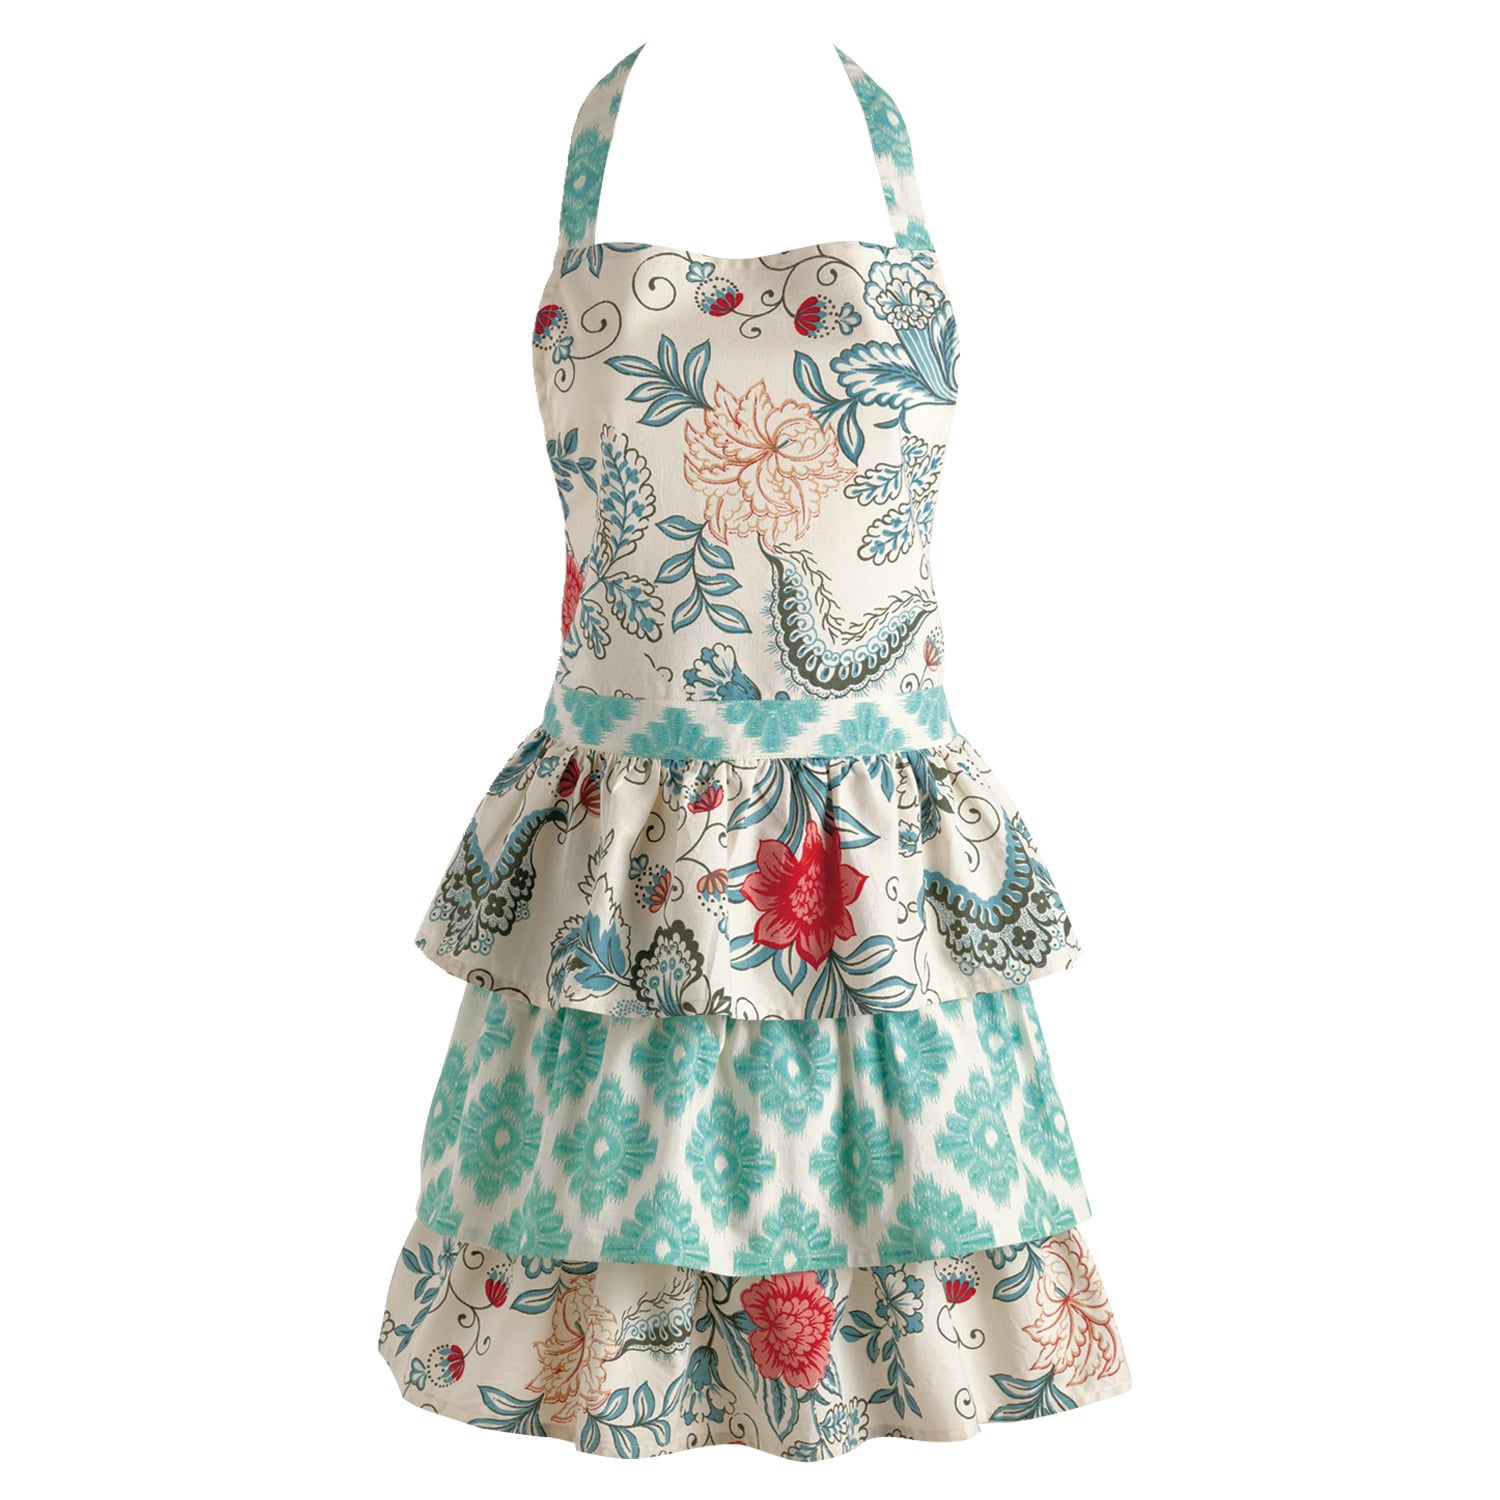 Shop Blue Ikat Flowers Vintage Apron - Free Shipping On Orders Over $45 -  Overstock - 10417263